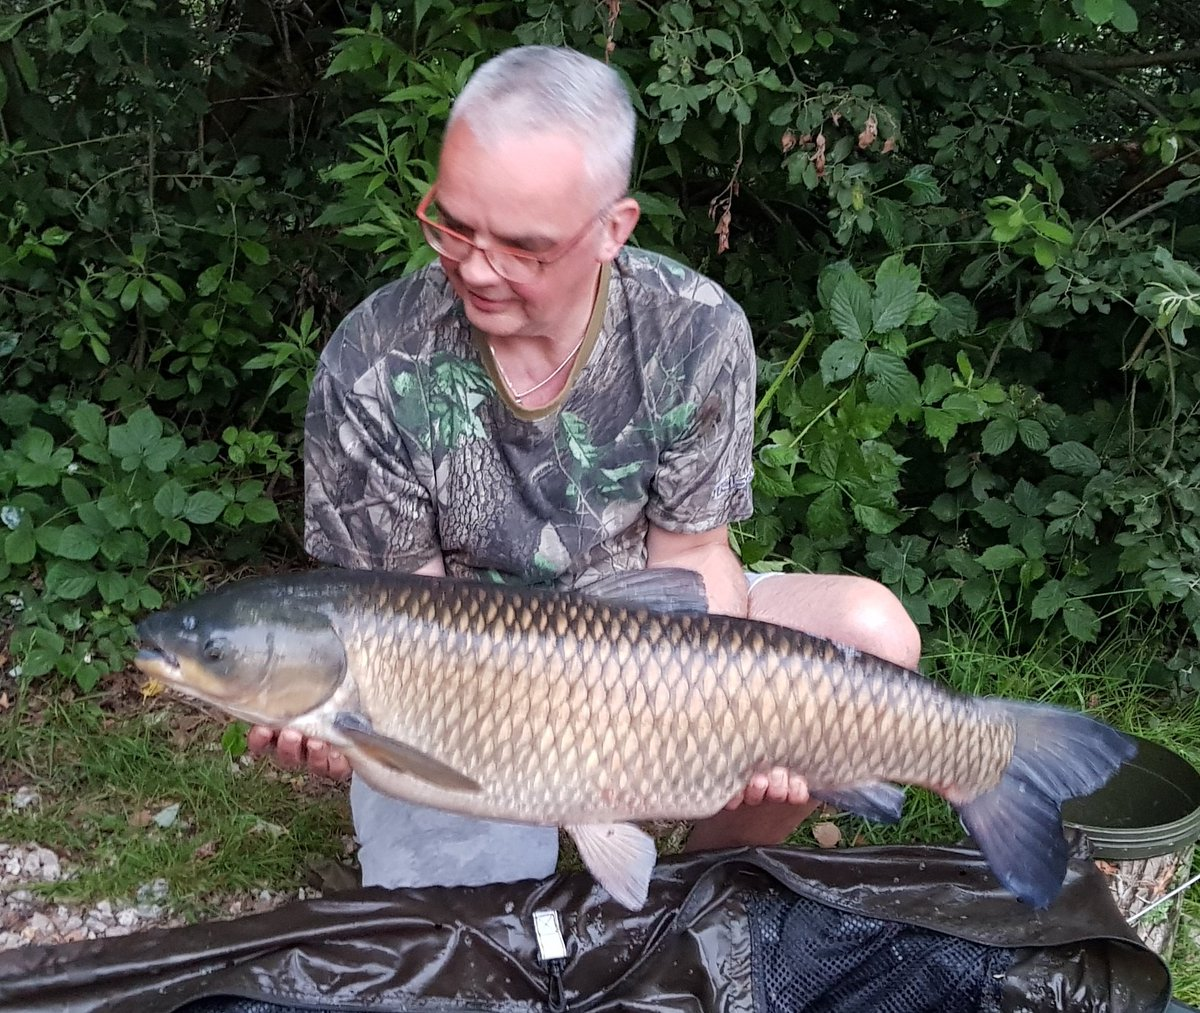 PB smashed!!! 3<b>5lb</b> of Belgian Grass Carp, never caught a